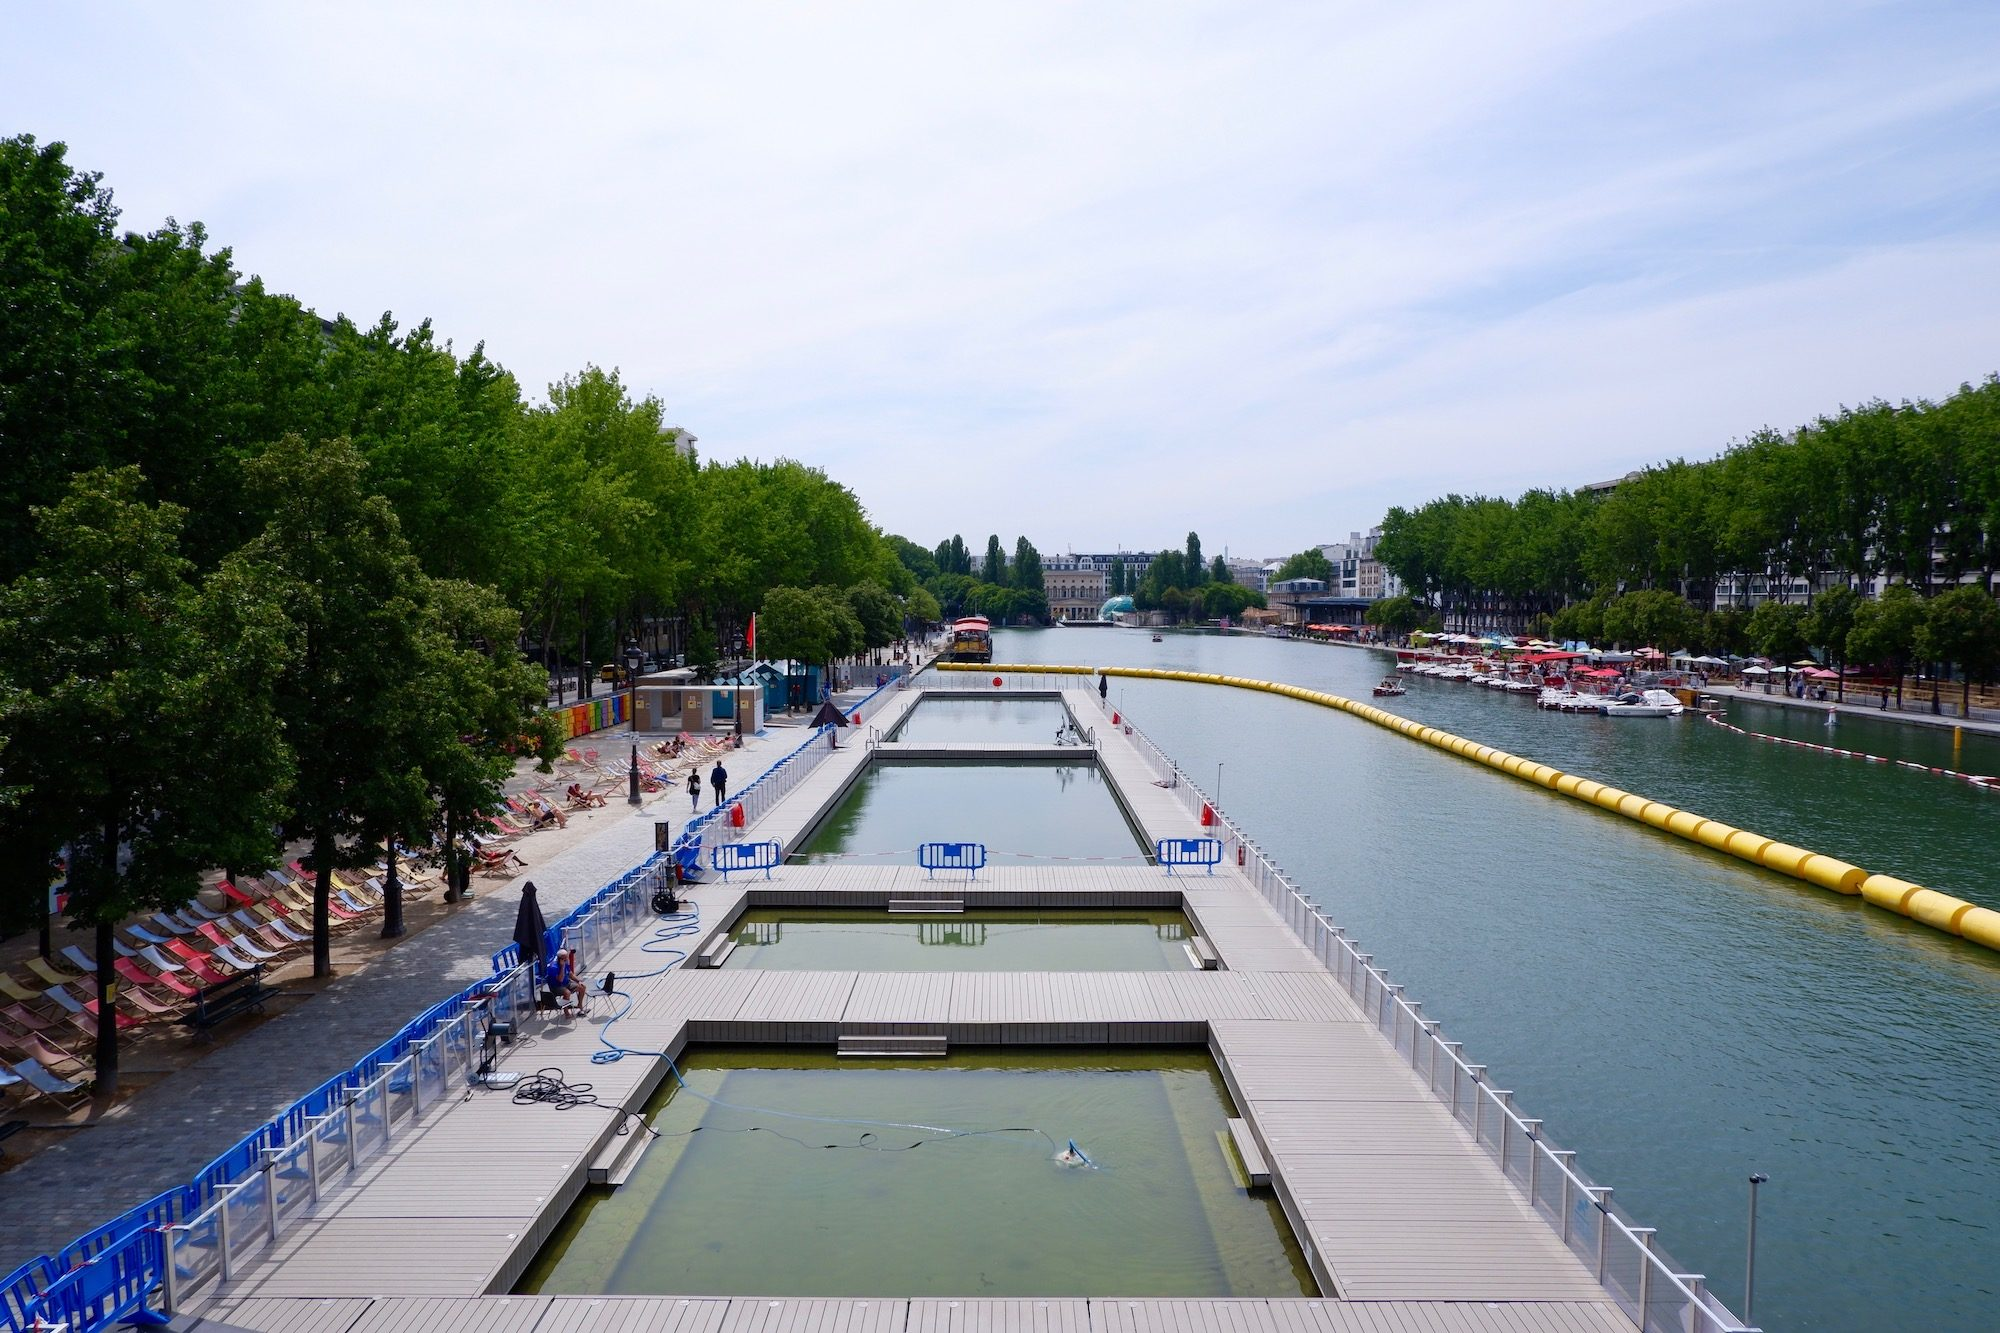 The canal pools at Paris Plages on the Canal de l'Ourcq.